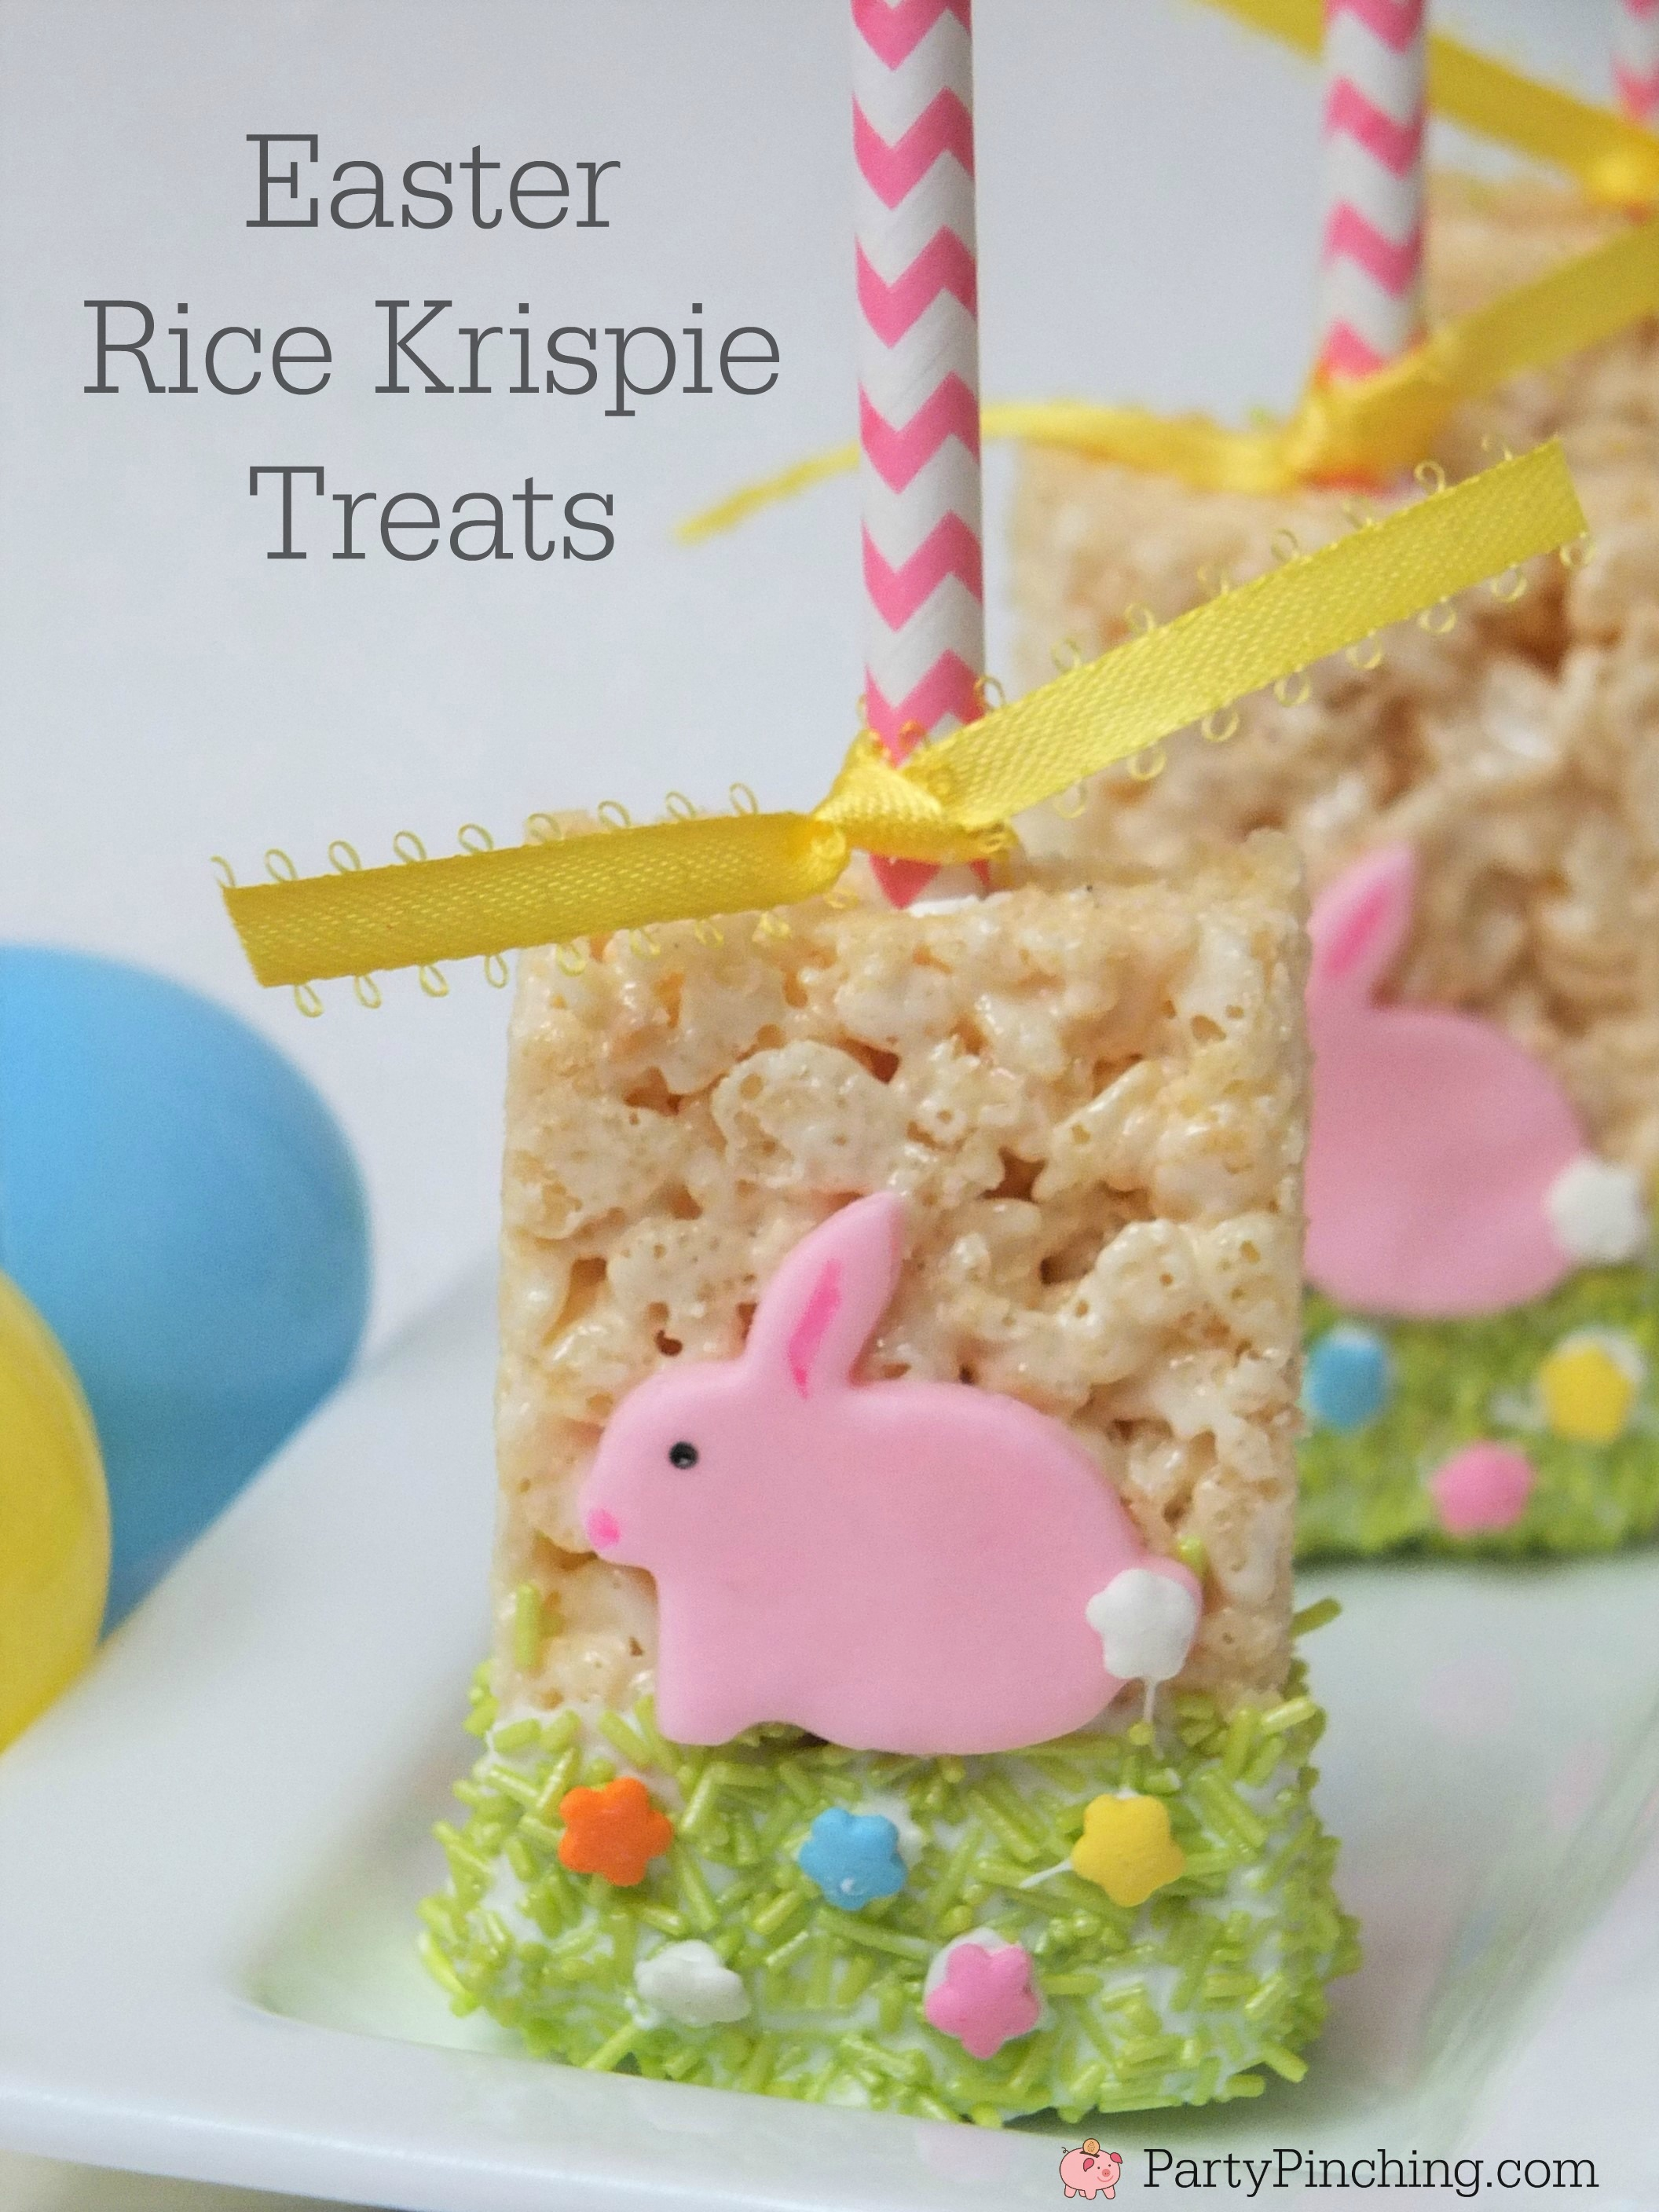 Easy easter rice krispie treat pops for kids fun dessert ideas for easter rice krispie treats cute easy bunny dessert idea for easter fun food for ccuart Choice Image